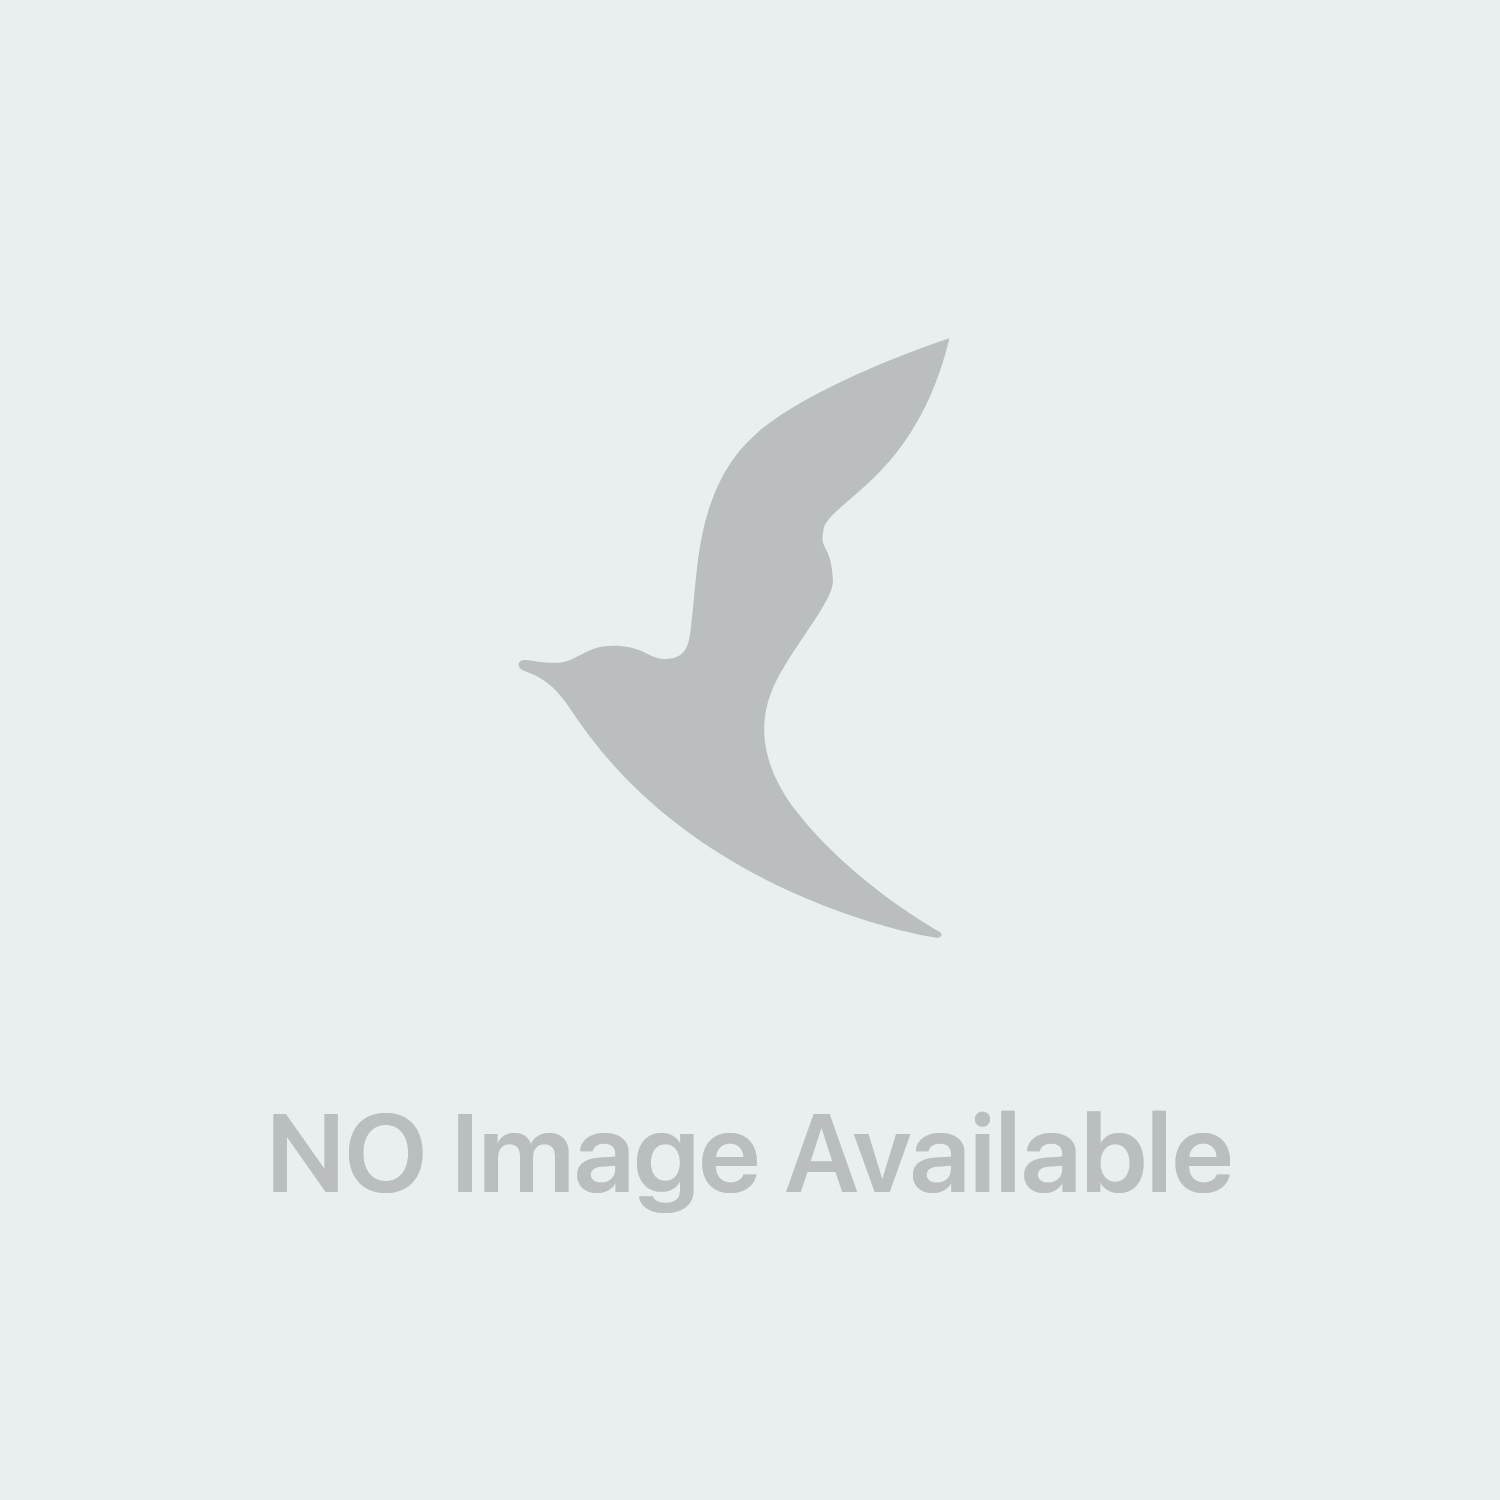 Pic Cerotto Aquablock Impermeabile 25 x 72 mm 10 Pezzi